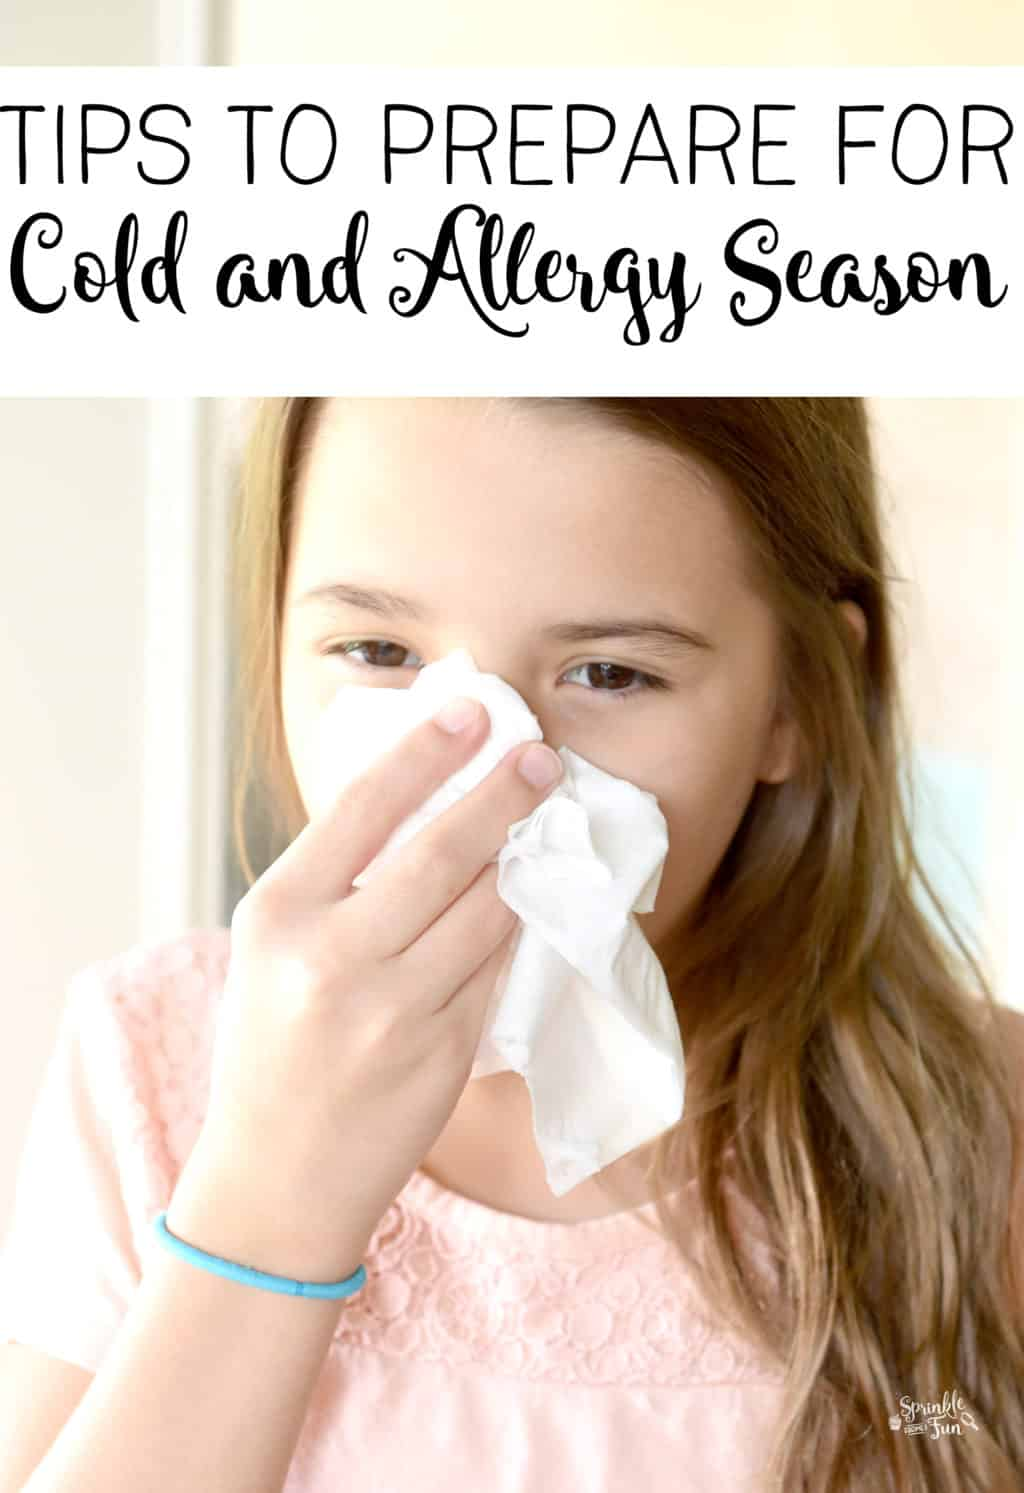 Tips to Prepare for Cold and Allergy Season. Here are my tips to prepare for cold and allergy season so that you are not stuck heading out to the store when you are sick.